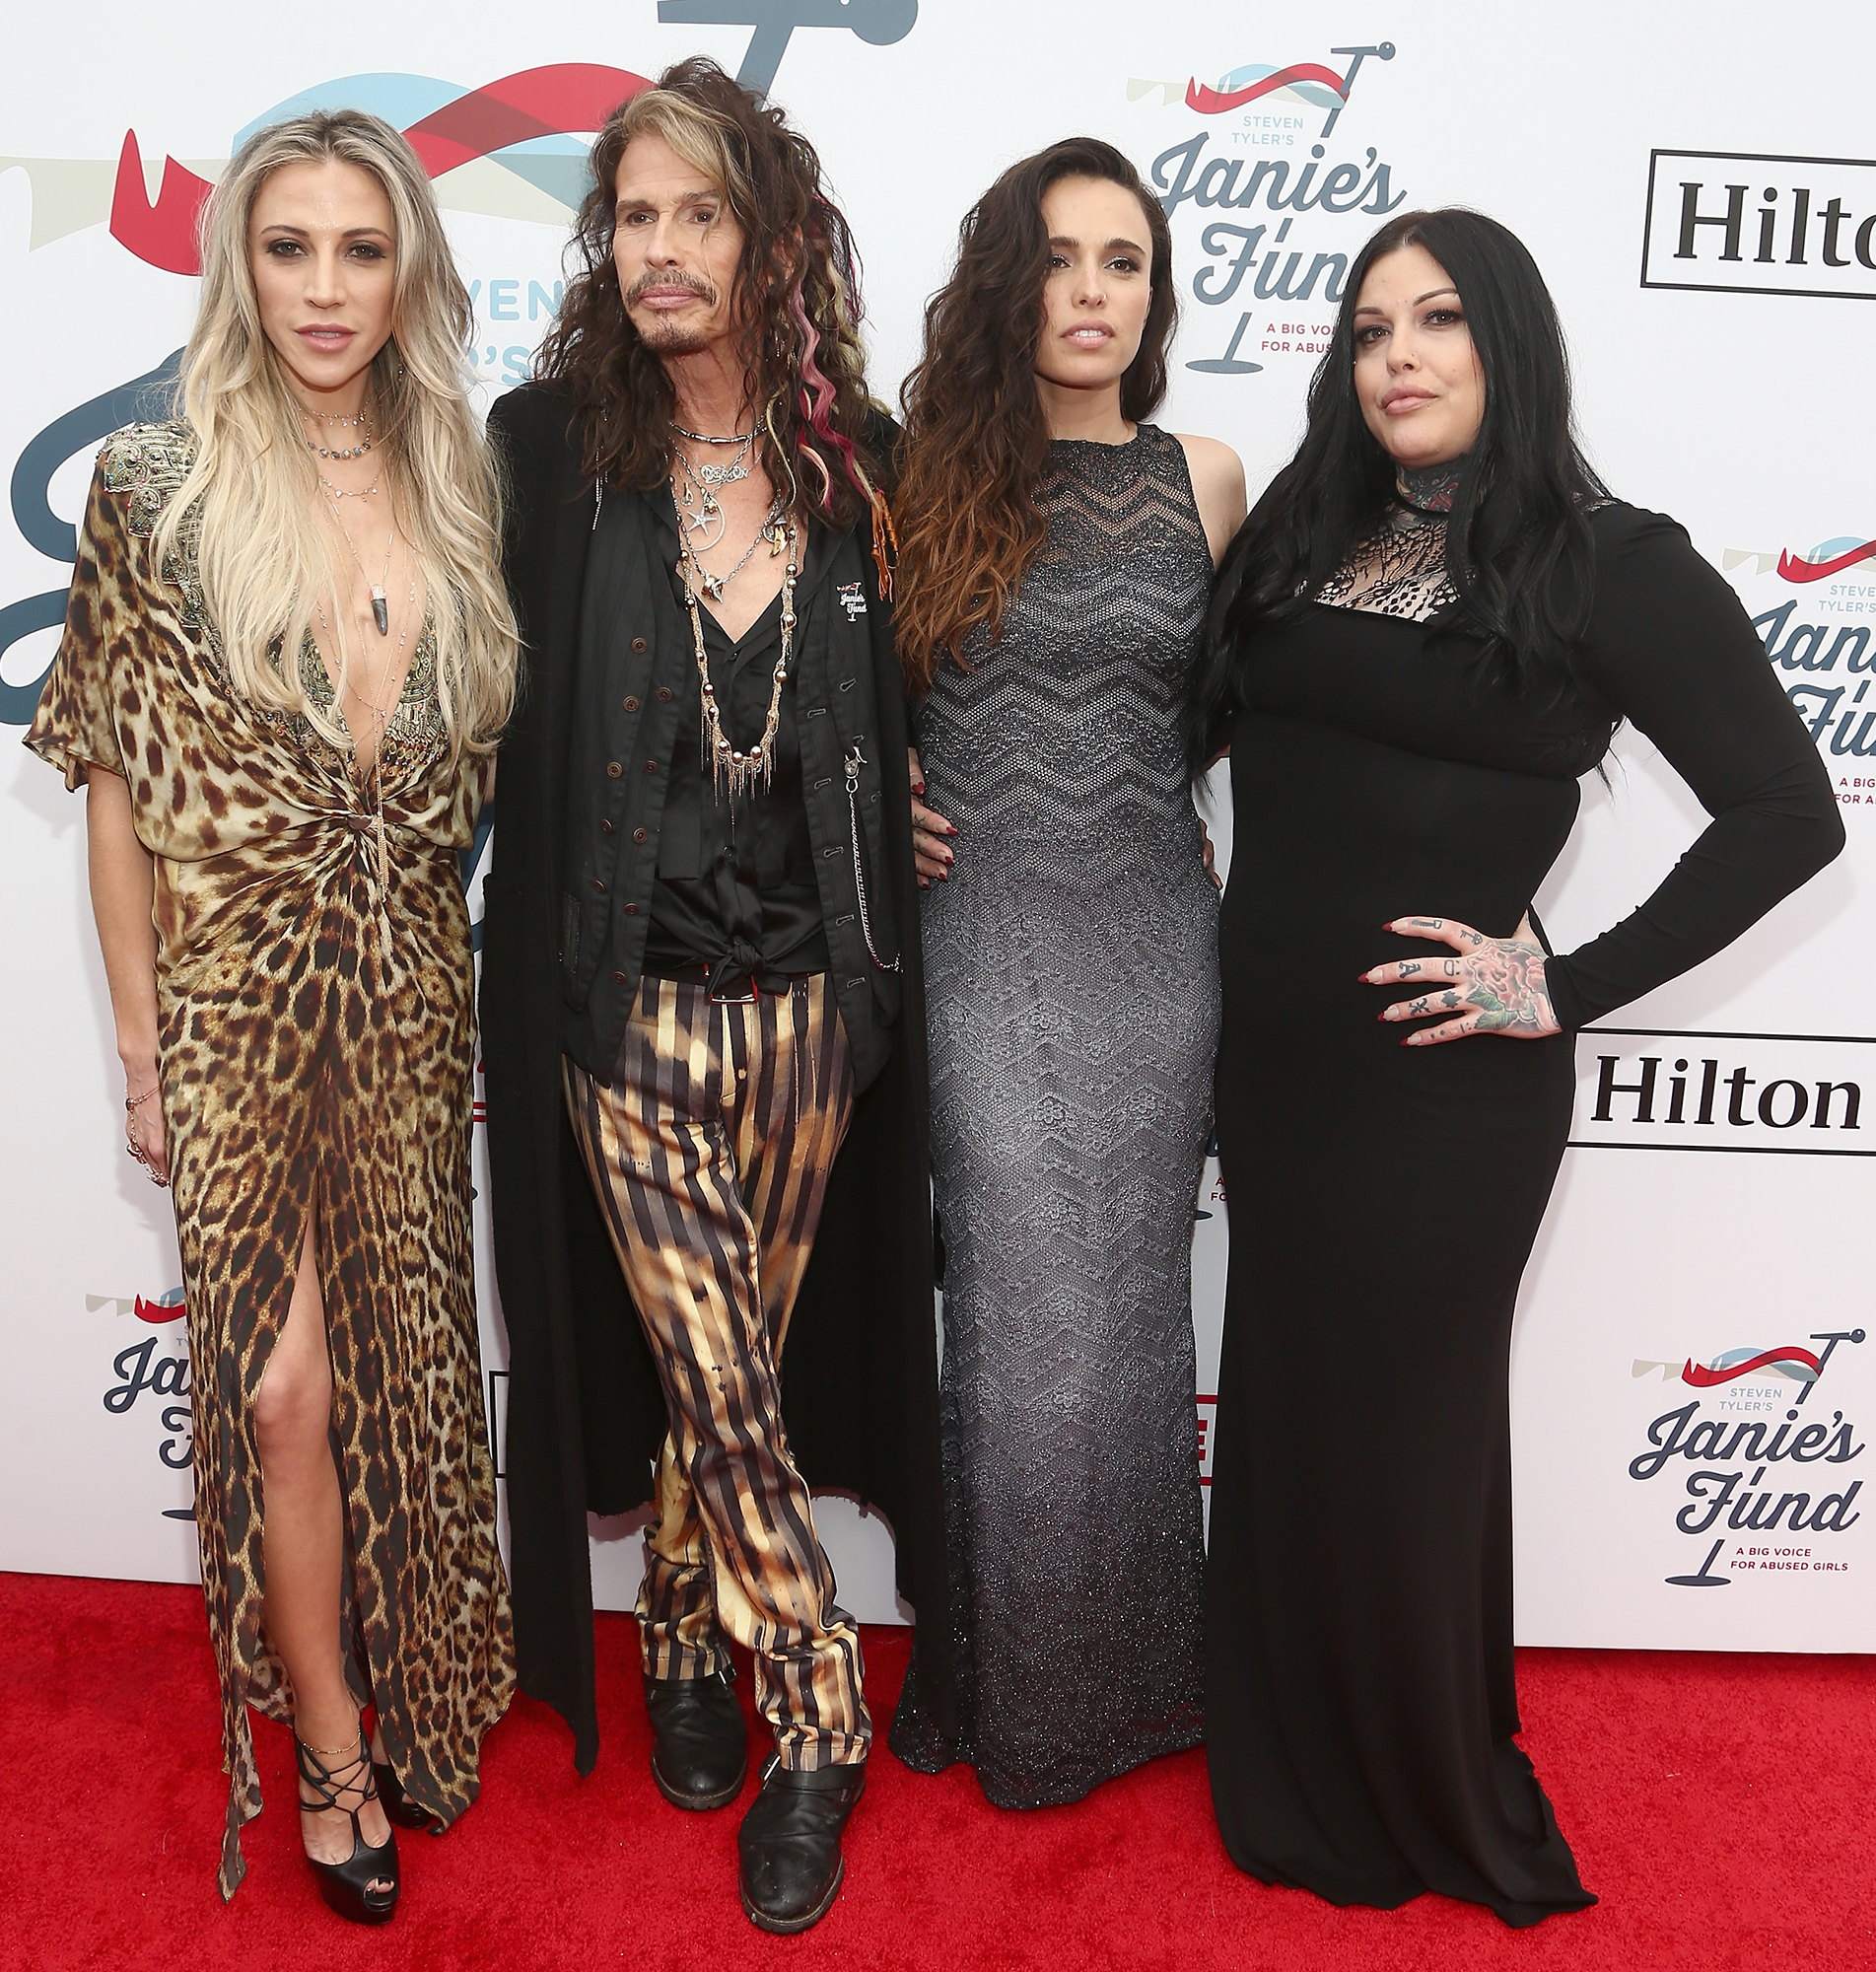 Aimee Preston Steven Tyler Chelsea Tyler Mia Tyler STARS BRINGING FAMILY TO GRAMMYS 2019 - The musician and his partner, Aimee Preston, posed for pics with two of Tyler's three daughters at a Grammys after-party.